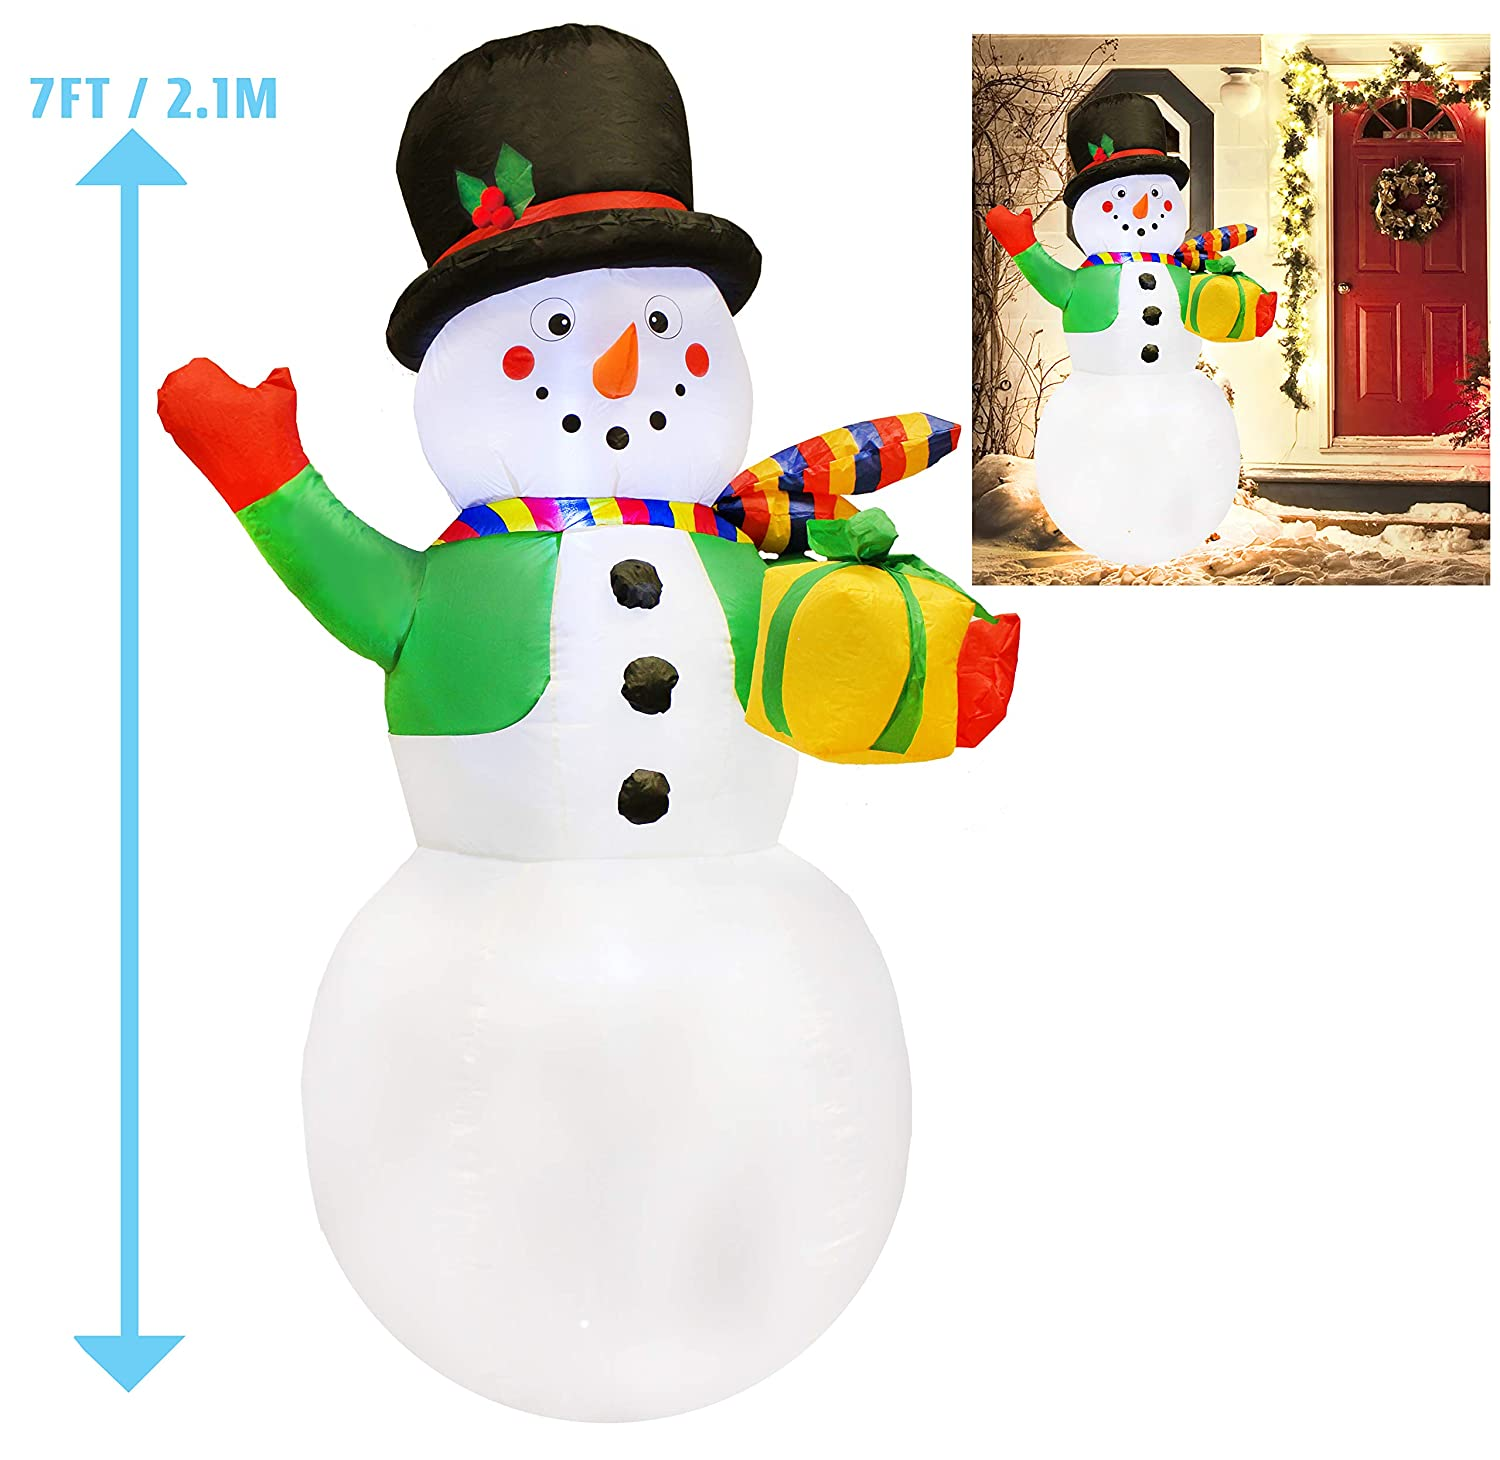 Amazon Joiedomi 7 Foot Snowman Inflatable with Present Gift Box